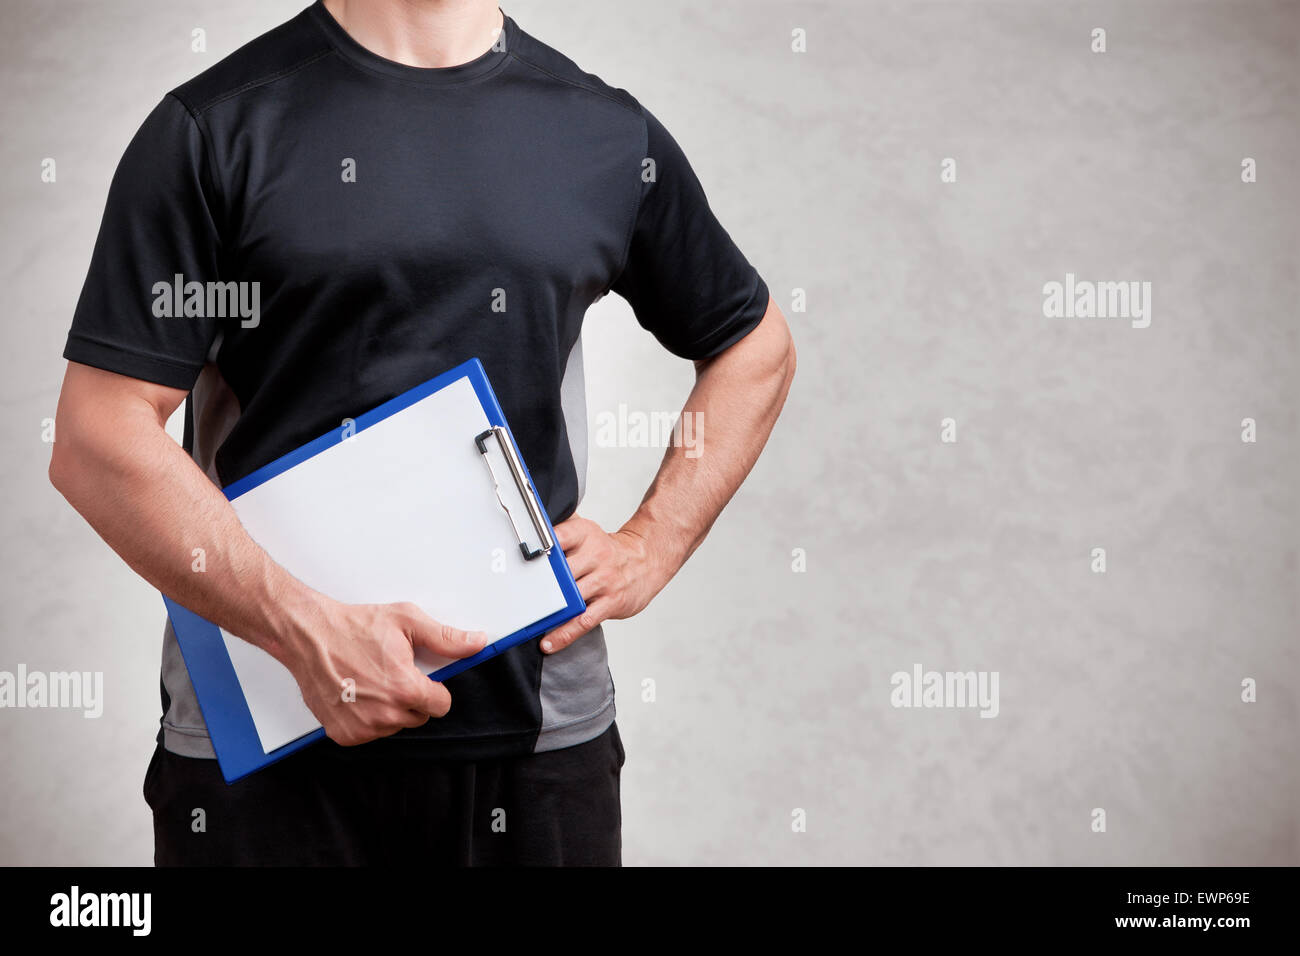 Personal Trainer, with a pad in his hand, isolated in grey - Stock Image